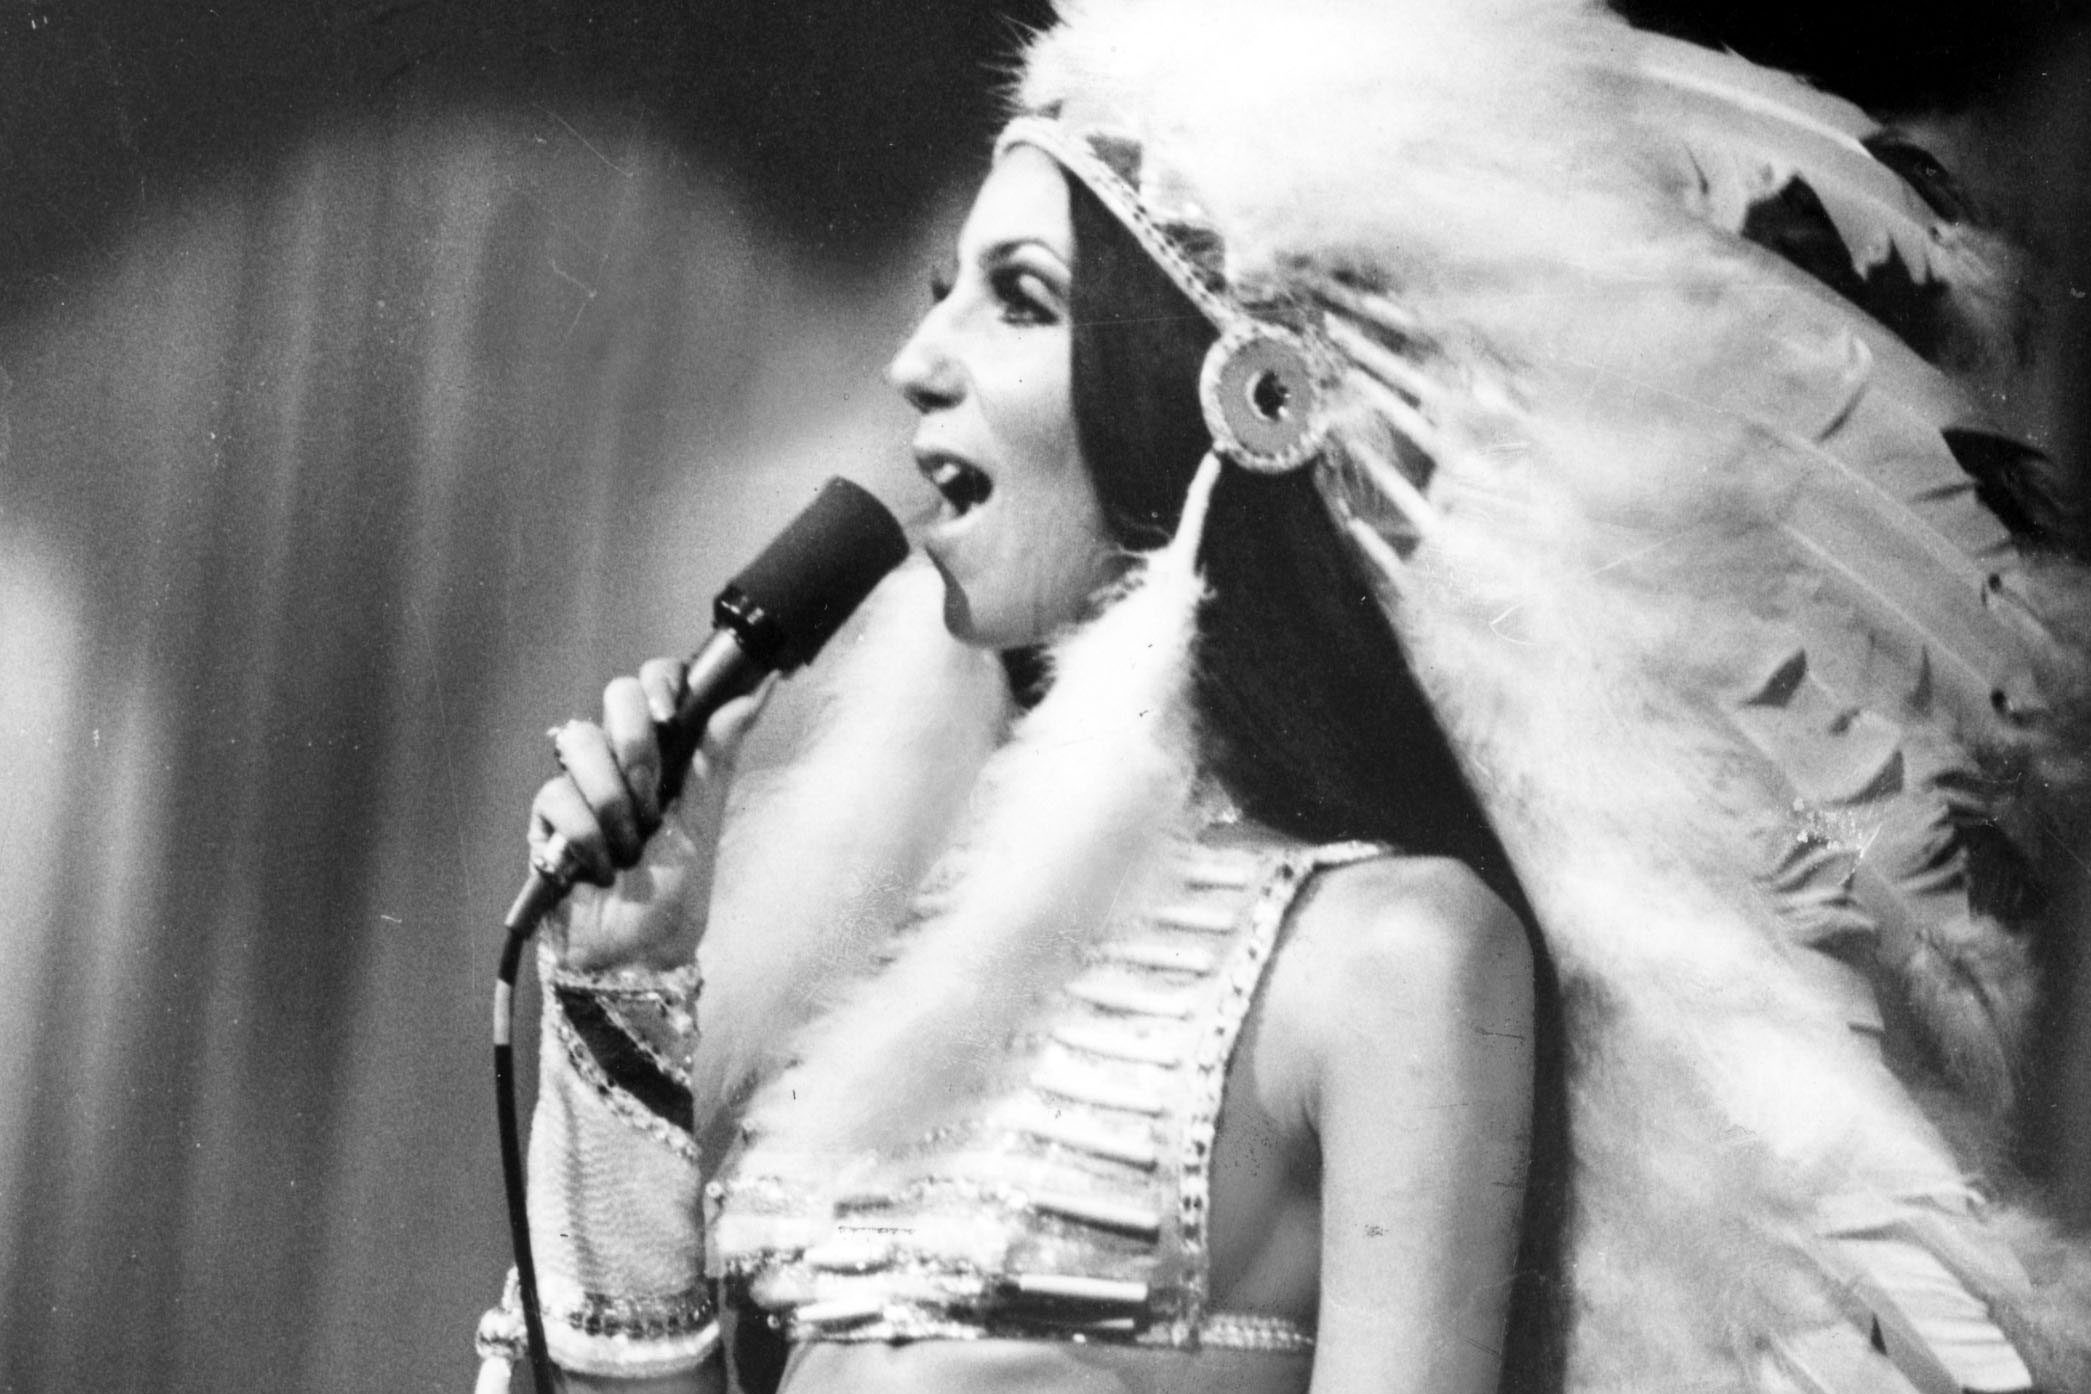 cher on stage in native american outfit